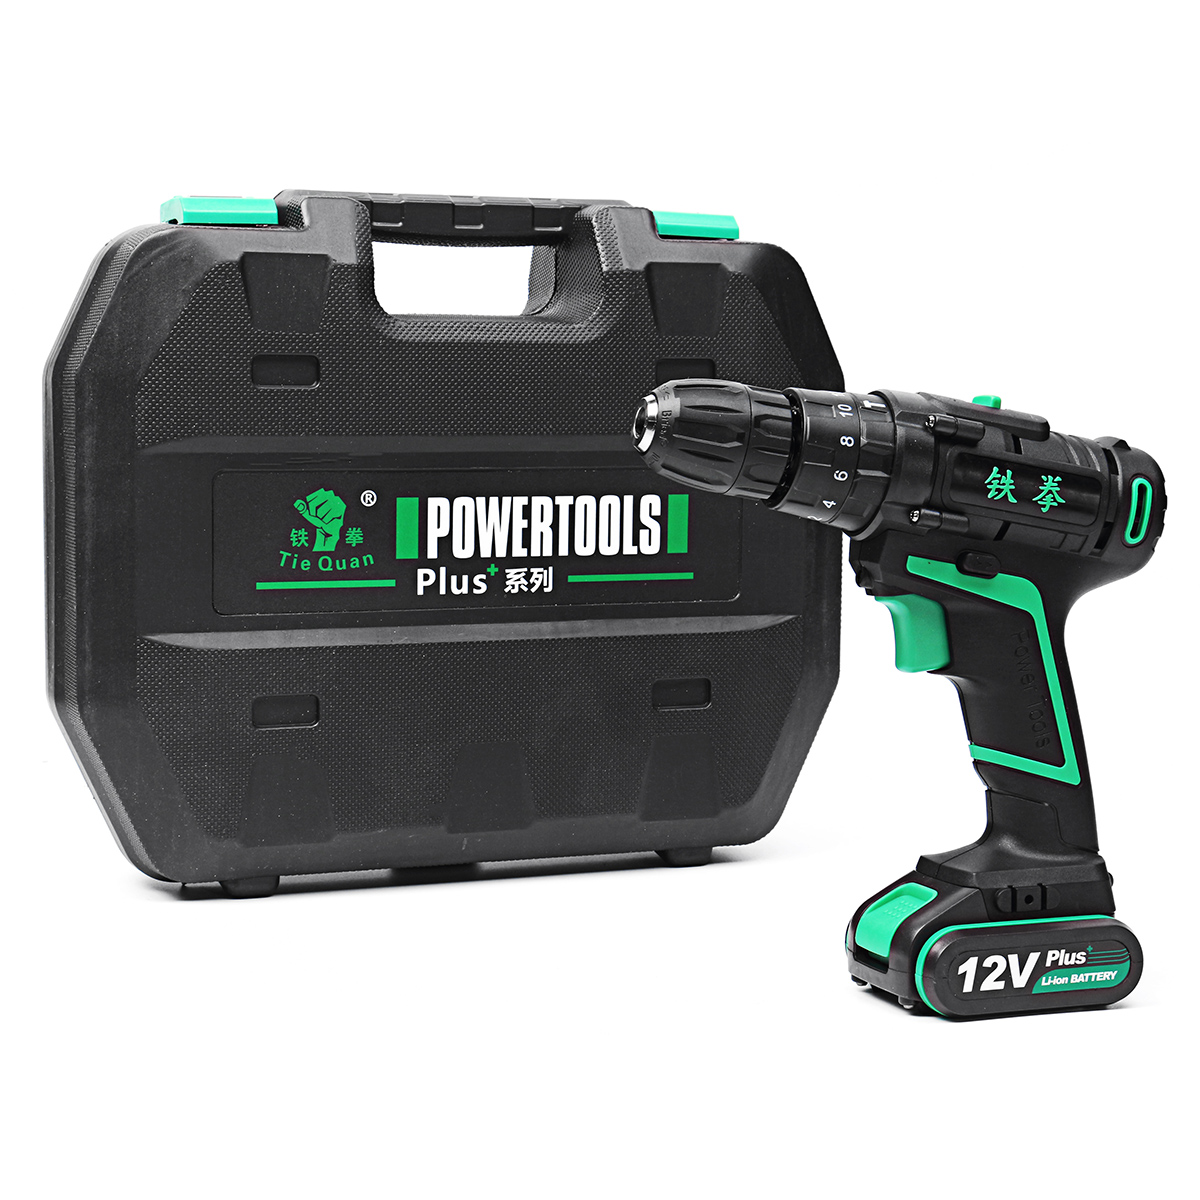 12V 1.5Ah Electric Hammer Drill Rechargeable Cordless Two Speed Power Drills with 2 Li-ion Battery